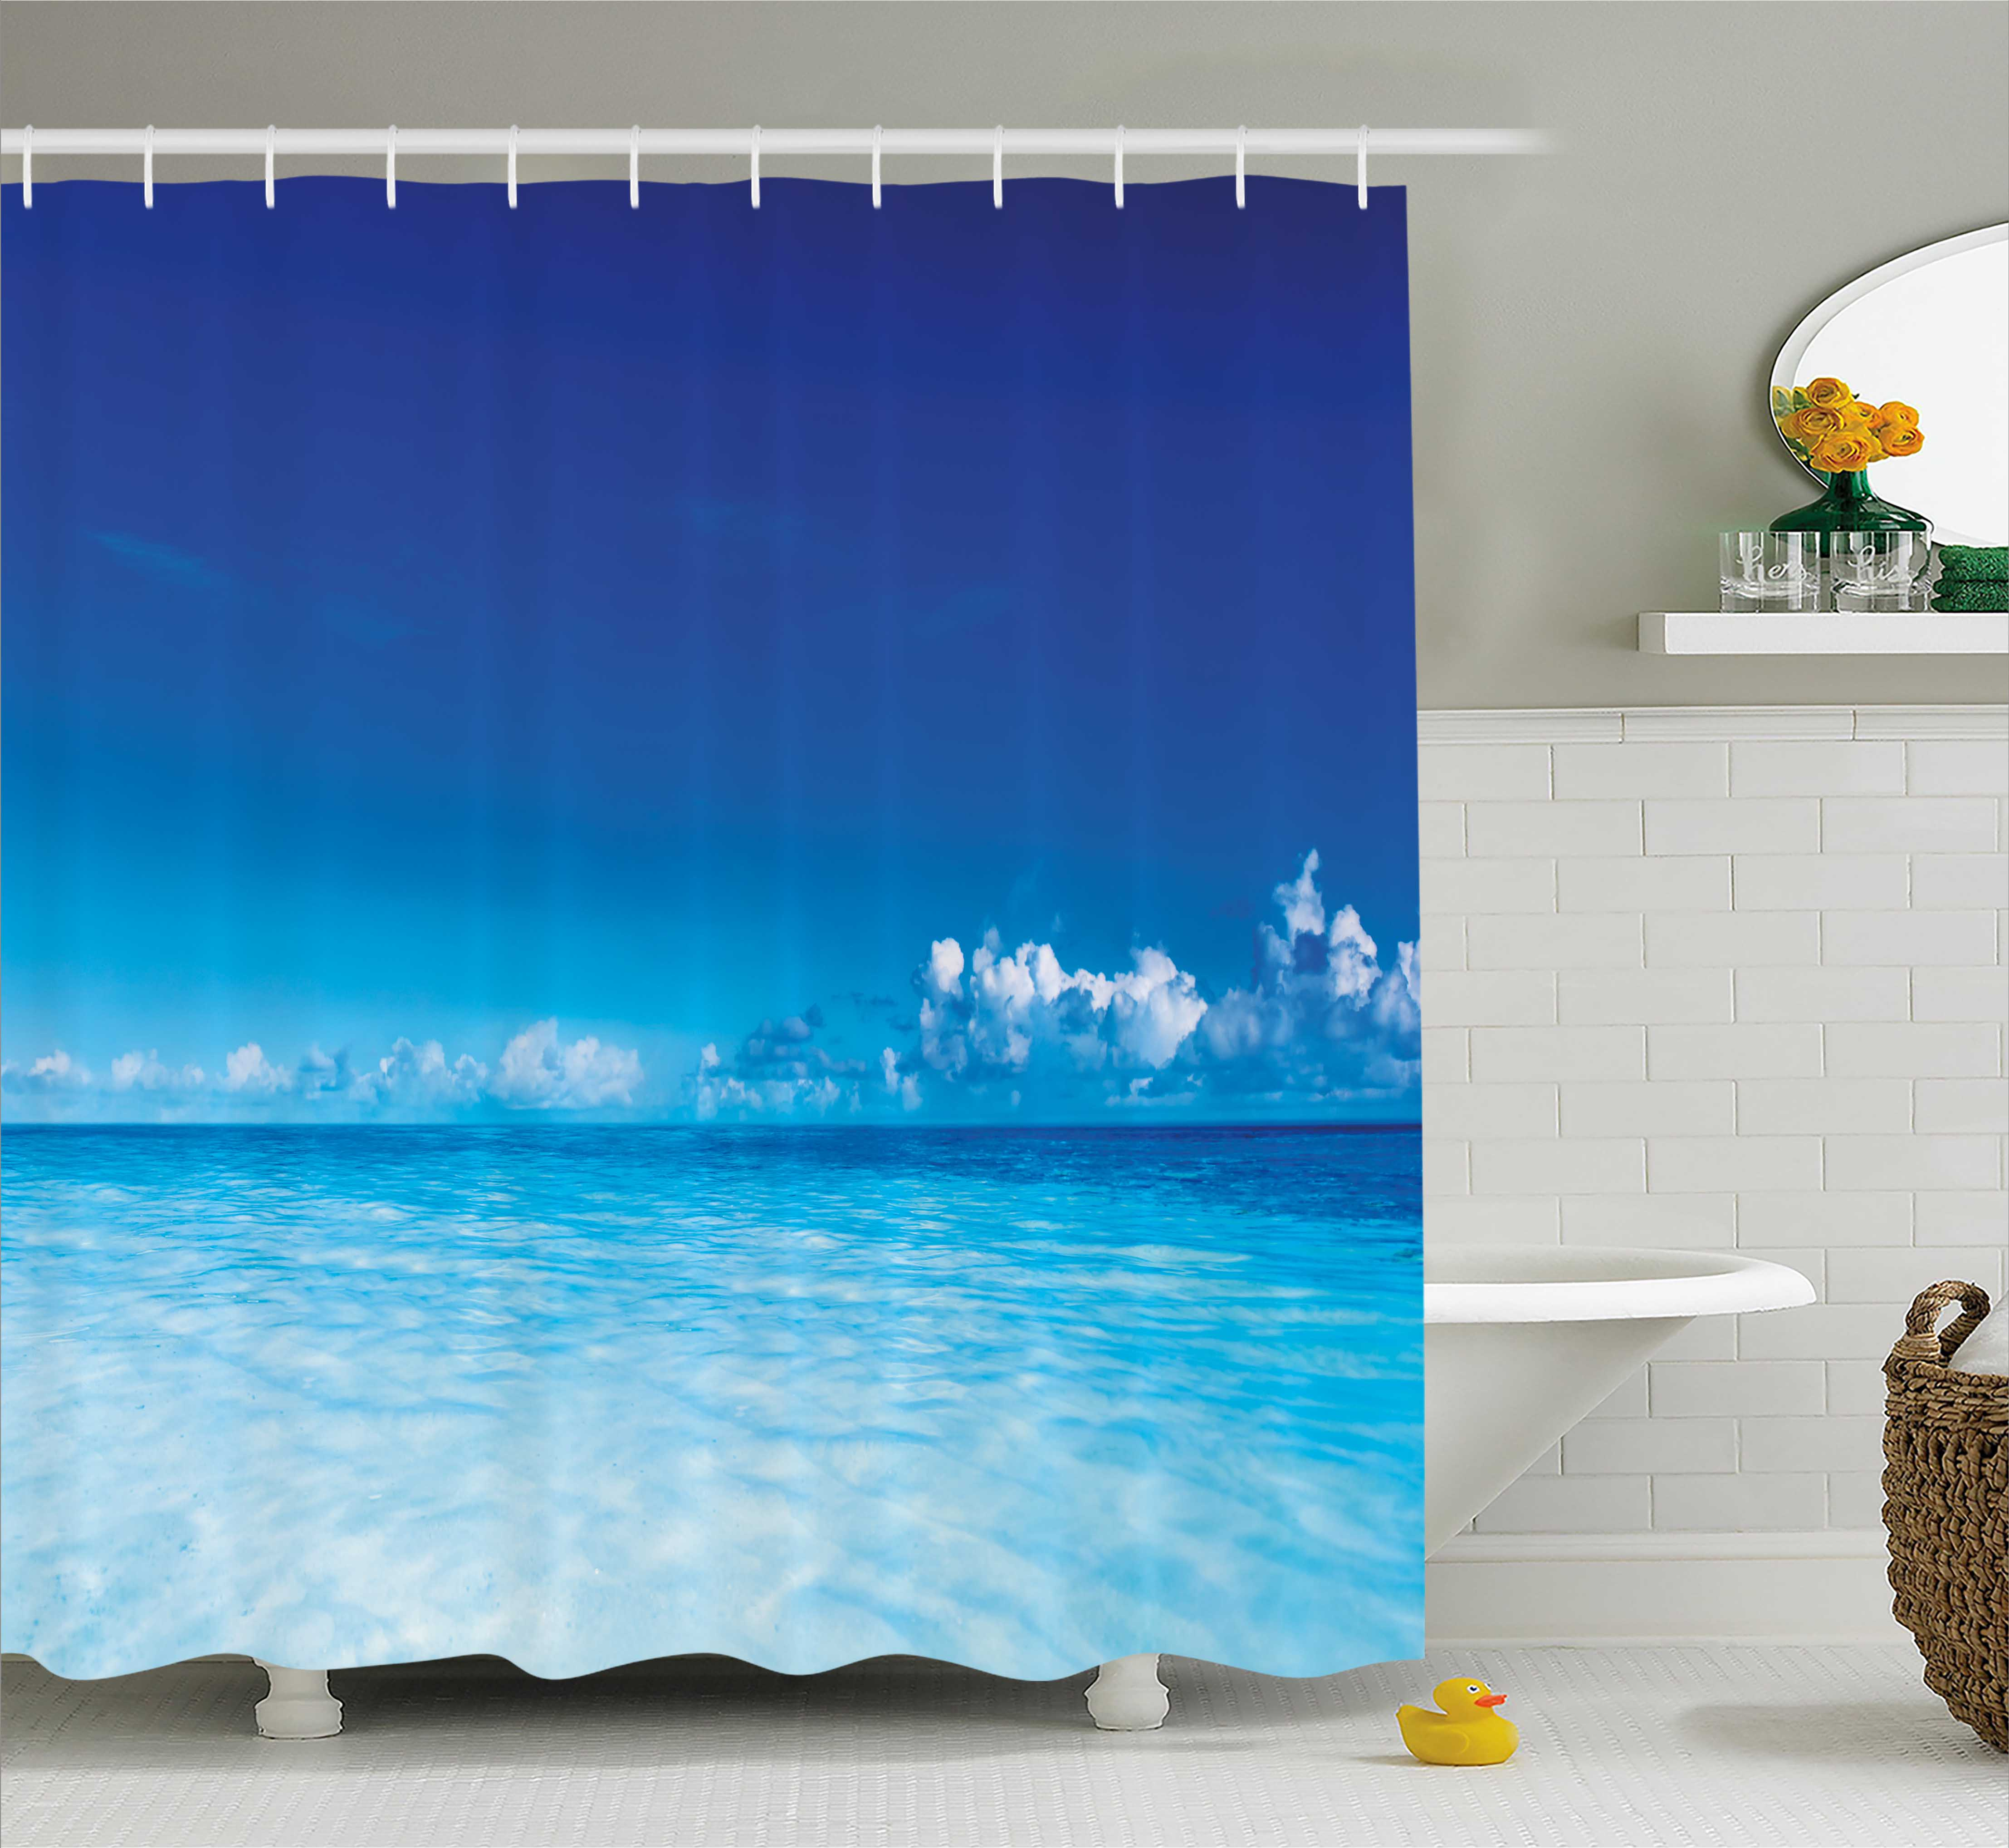 Landscape Shower Curtain, Ocean Scenery Deep Sea Beach Hot Summer Themed Photo, Fabric Bathroom Set with Hooks, 69W X 70L Inches, Turquoise Light Blue and Dark Blue, by Ambesonne